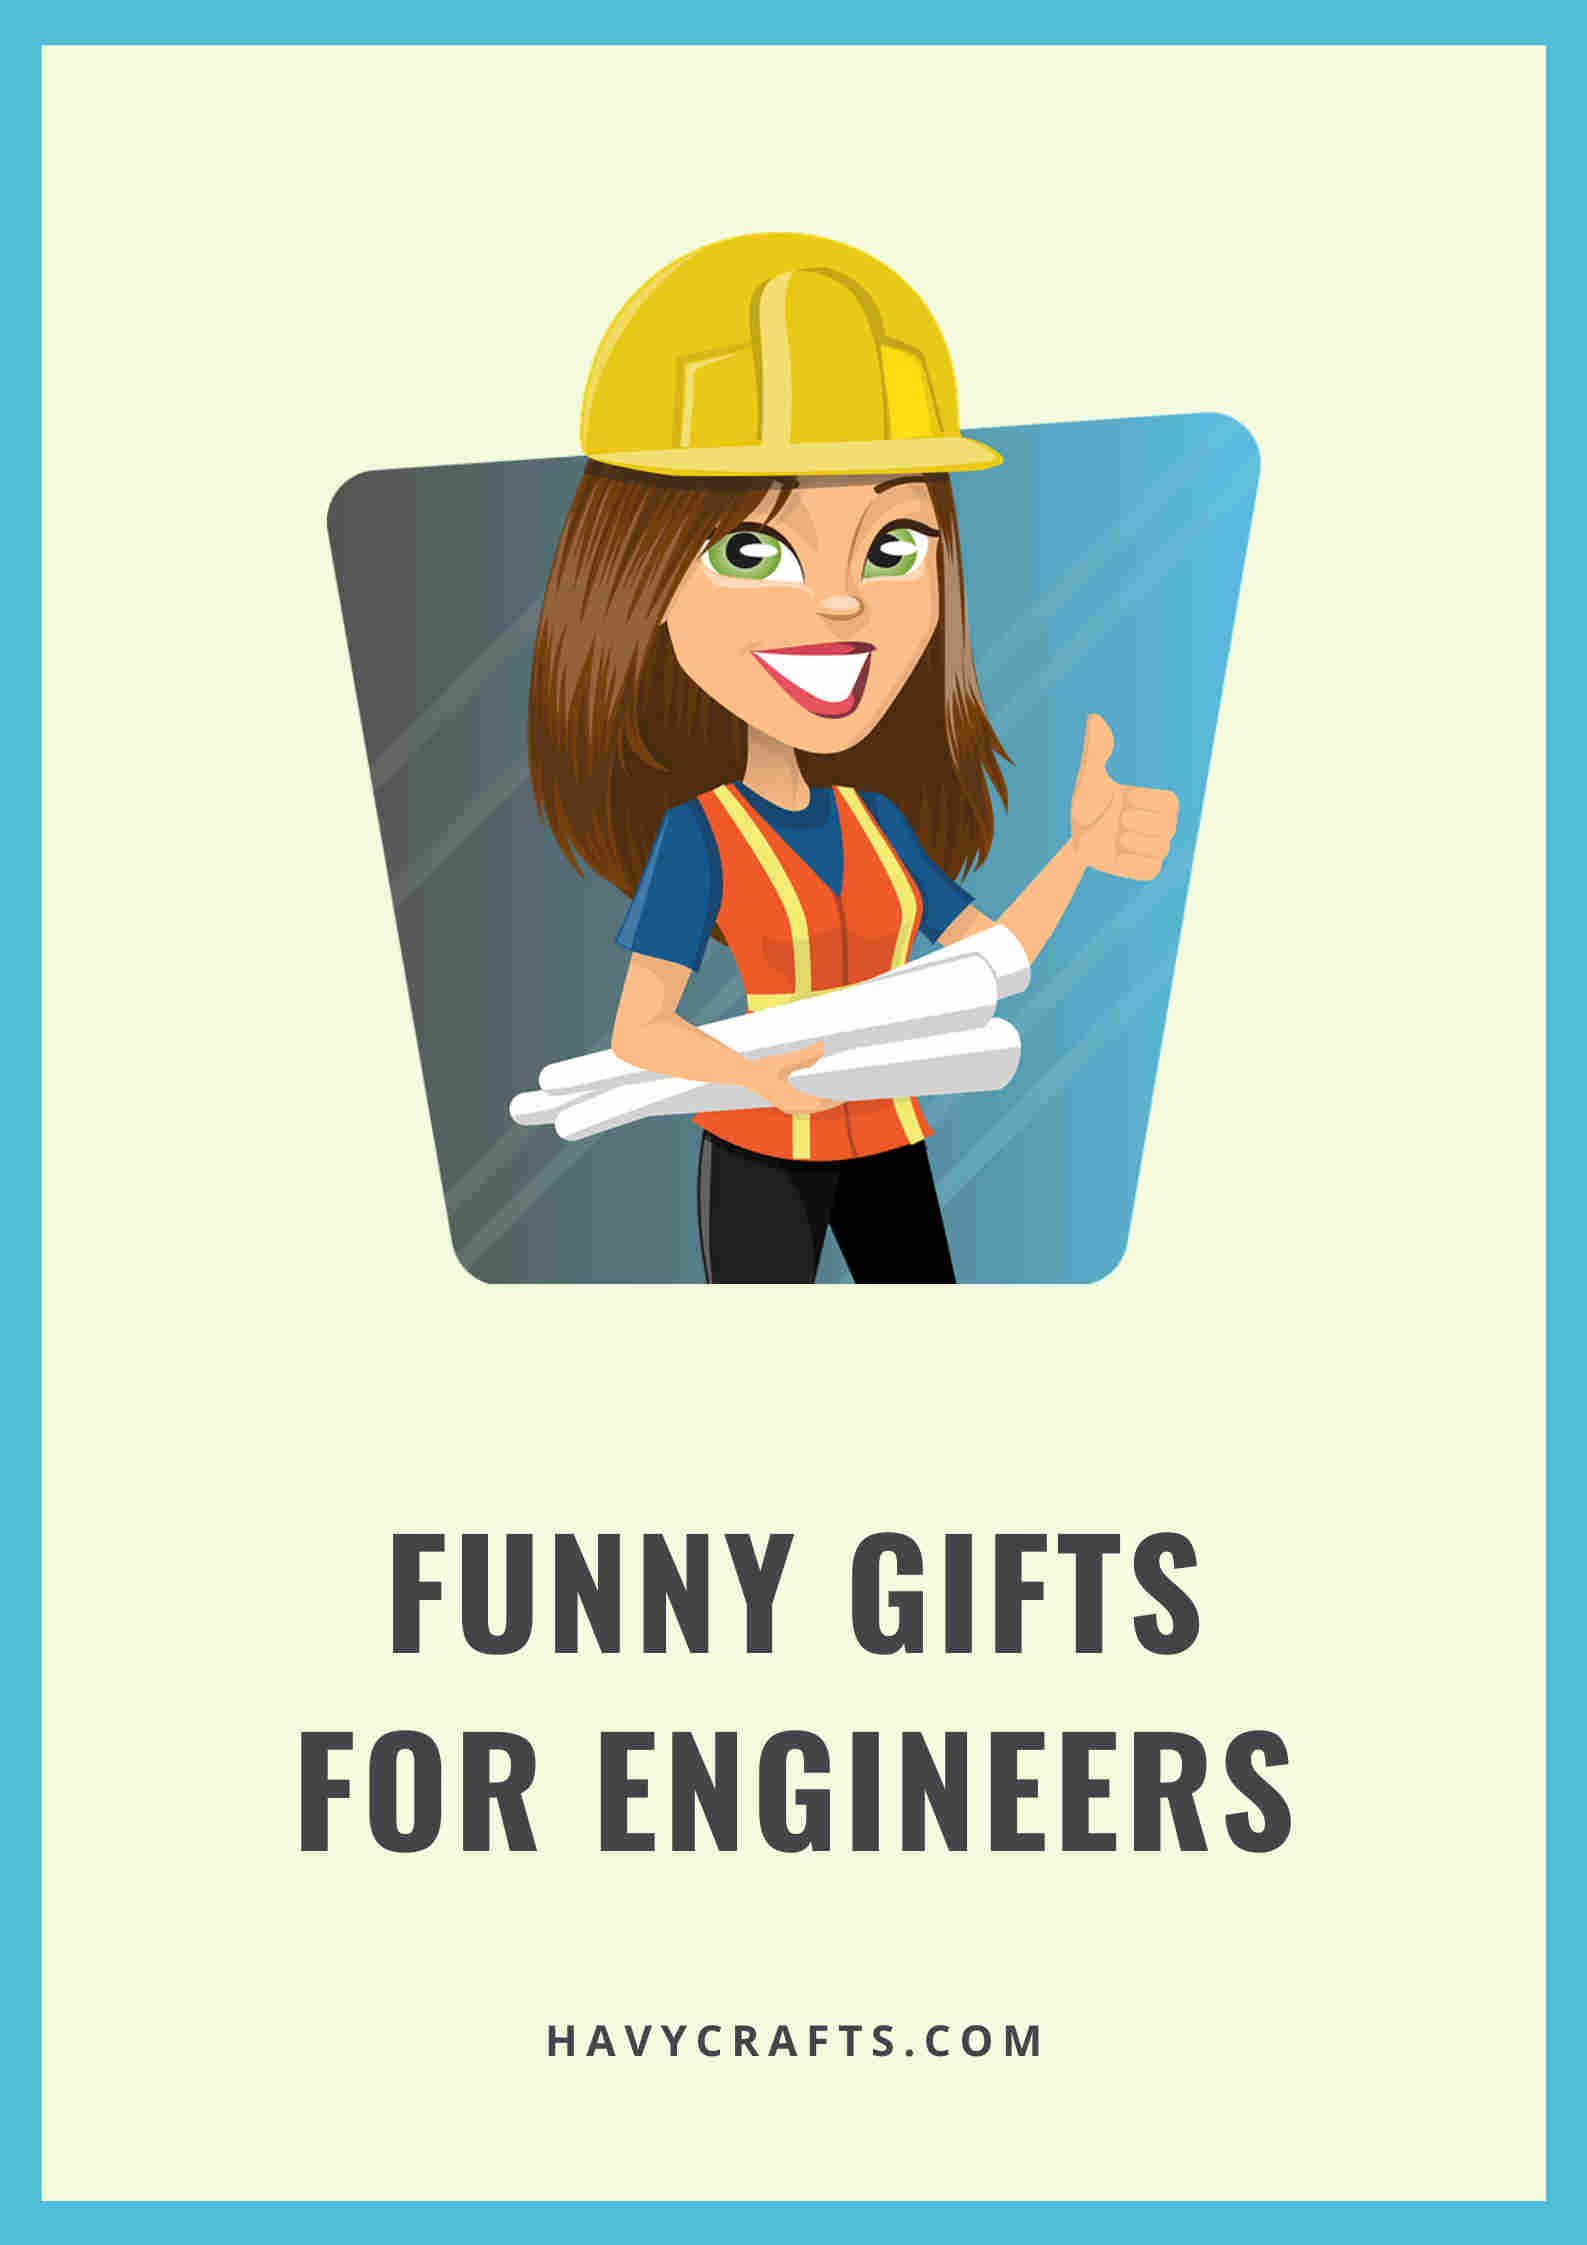 hilarious gifts for witty engineers